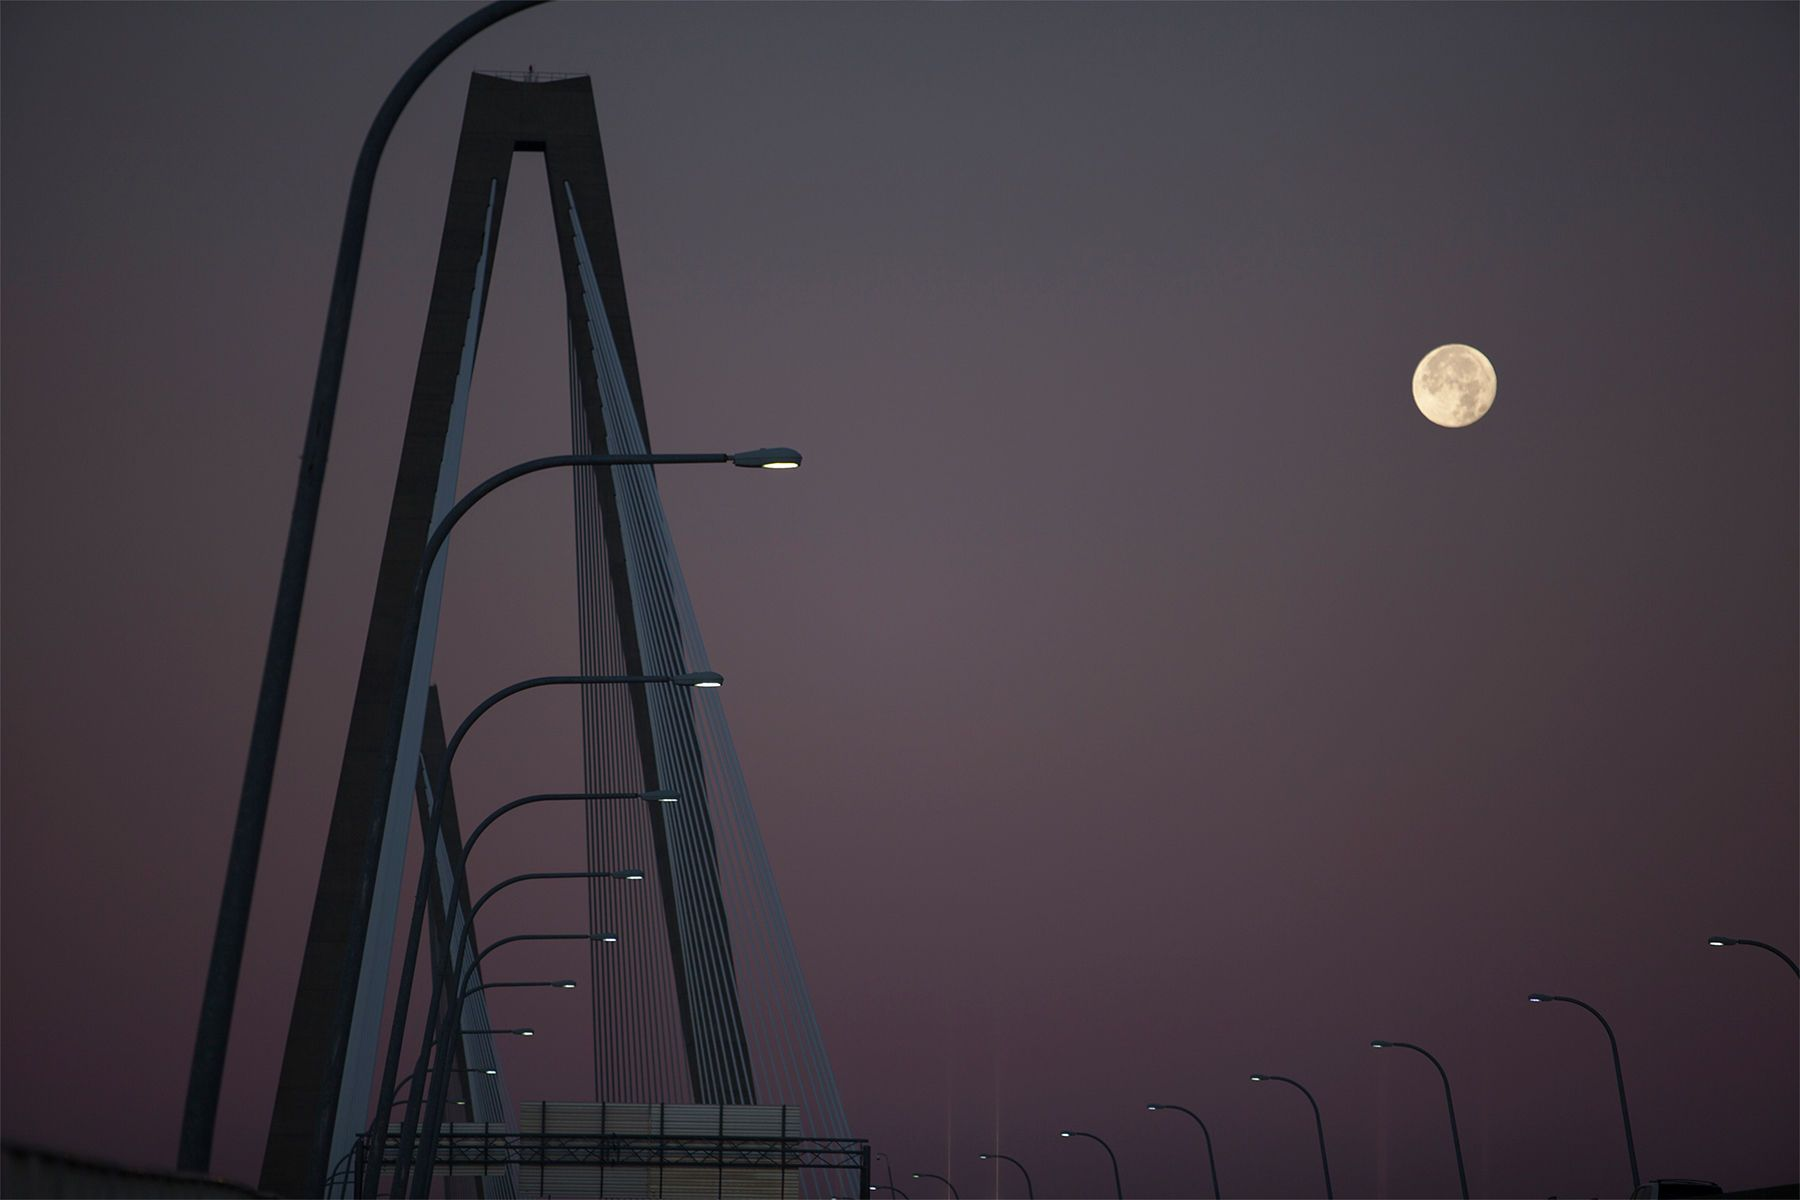 The moon sets over the Arthur Ravenel Jr. Bridge that leads into Charleston, South Carolina on December 18, 2013. Finished in 2005, the bridge has quickly become an iconic image for the historical city. Charleston with a non-union labor force, business friendly government and heavy tax incentives, are luring companies like Boeing to South Carolina. It also helps with Charleston's reputation as a top tourist destinations and a place rich in history and culture. For the third consecutive year, Charleston's been voted the No. 1 city in the United States by Condé Nast Traveler. REUTERS/Randall Hill   (UNITED STATES)